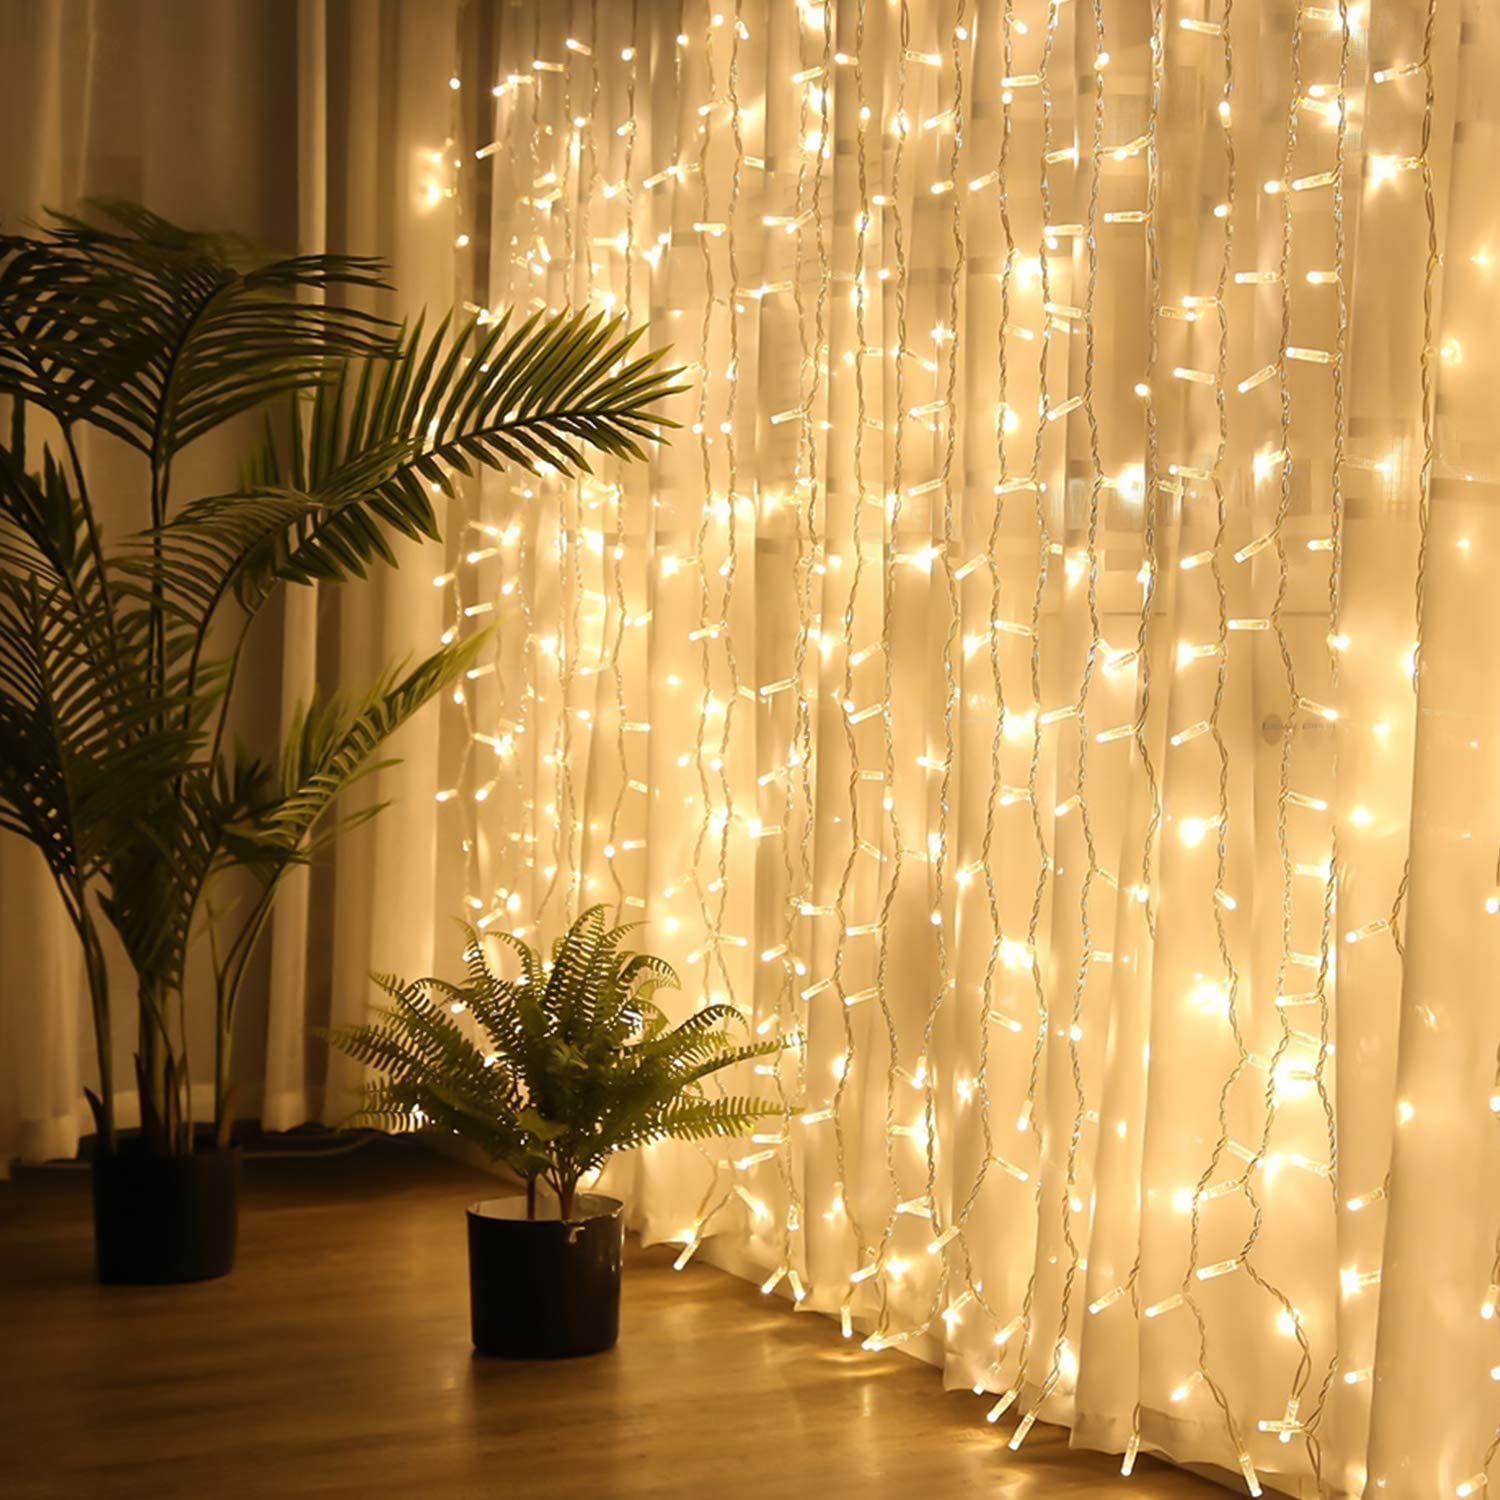 curtain lights brightown 600 led window curtain string lights with remote 8 lighting modes timer 20 ft hanging twinkle light for bedroom wedding